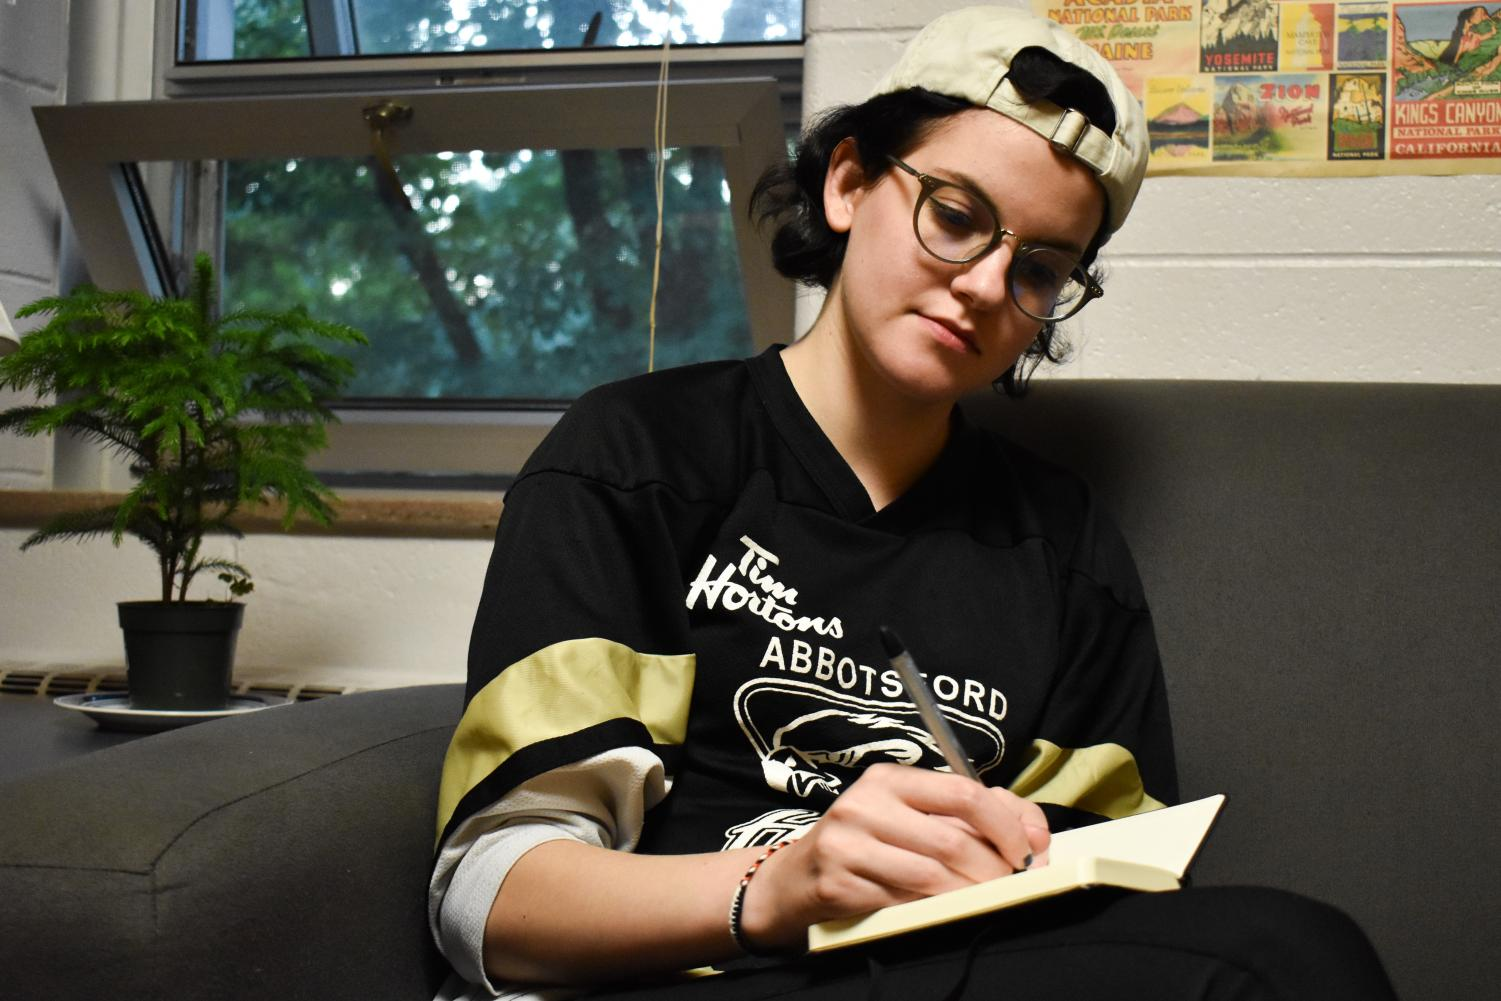 Conservatory senior Zoe Heuser writes in her diary. She is one of the many students who read their inner thoughts aloud during last Friday's Diary Reading Open Mic at the Cat in the Cream.